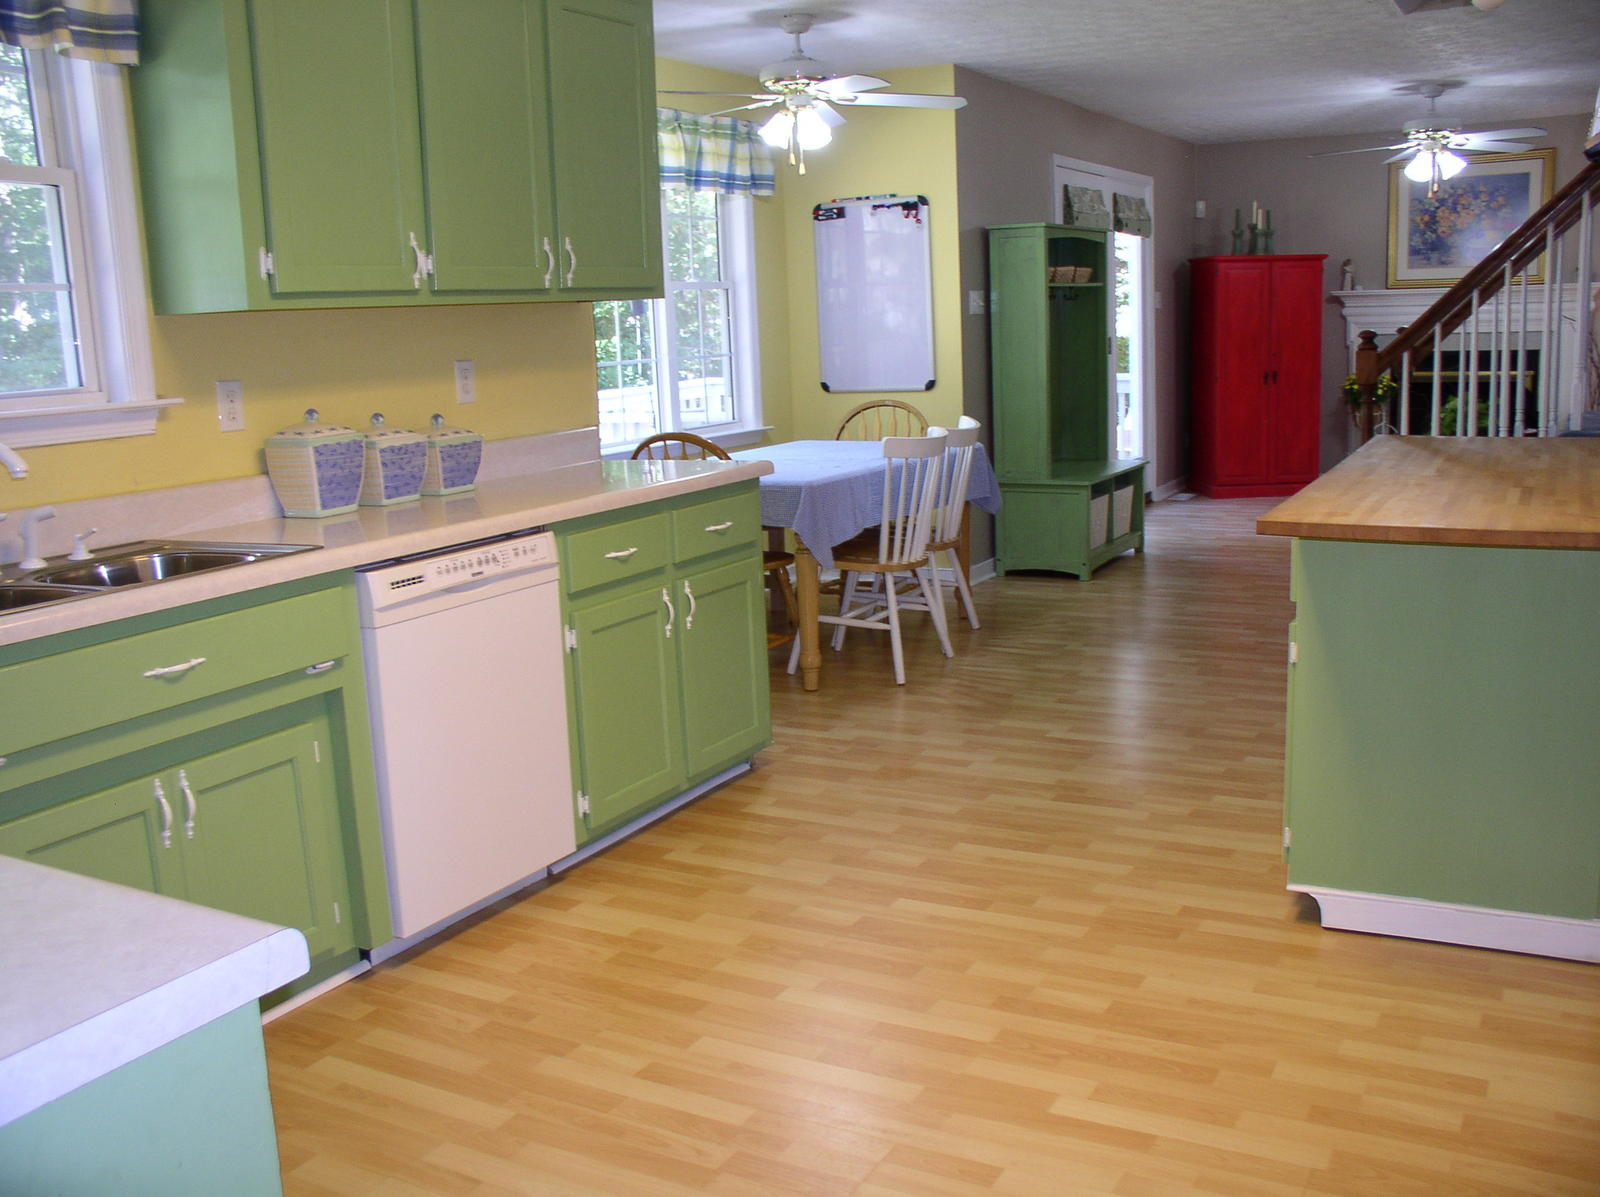 Painting your kitchen cabinets painting tips from the pros for Painting kitchen cabinets